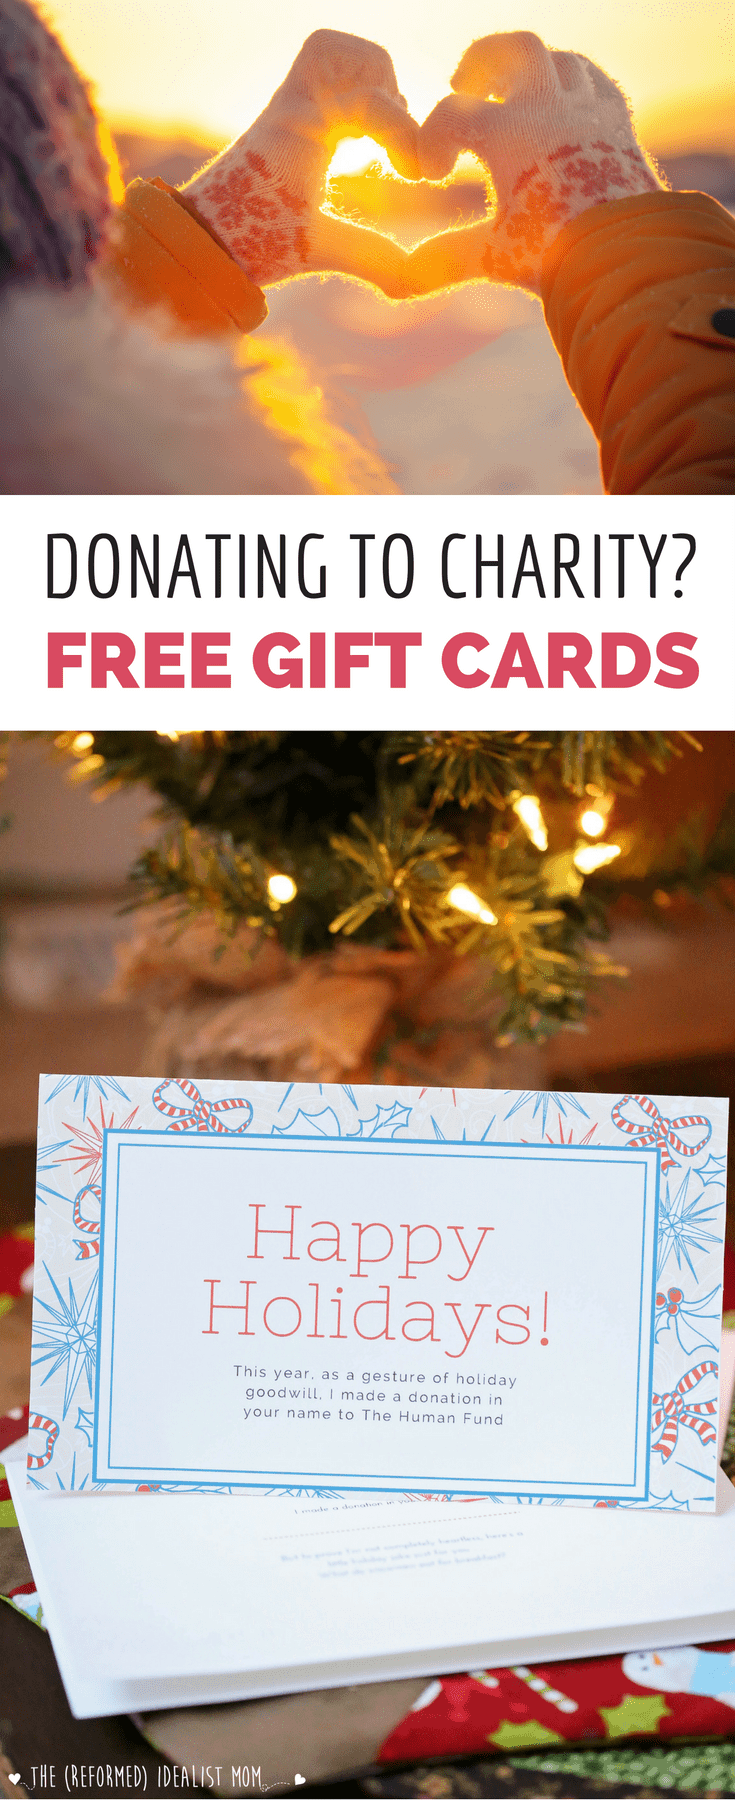 Most people appreciate when someone makes a donation to charity in their name instead of giving a physical gift. But how do you wrap a donation? Give one of these free printable Christmas and holiday cards to your loved ones to let them know about your donation gift...plus after reading what's written inside, they won't be able to hold back a smile! Includes three different designs.